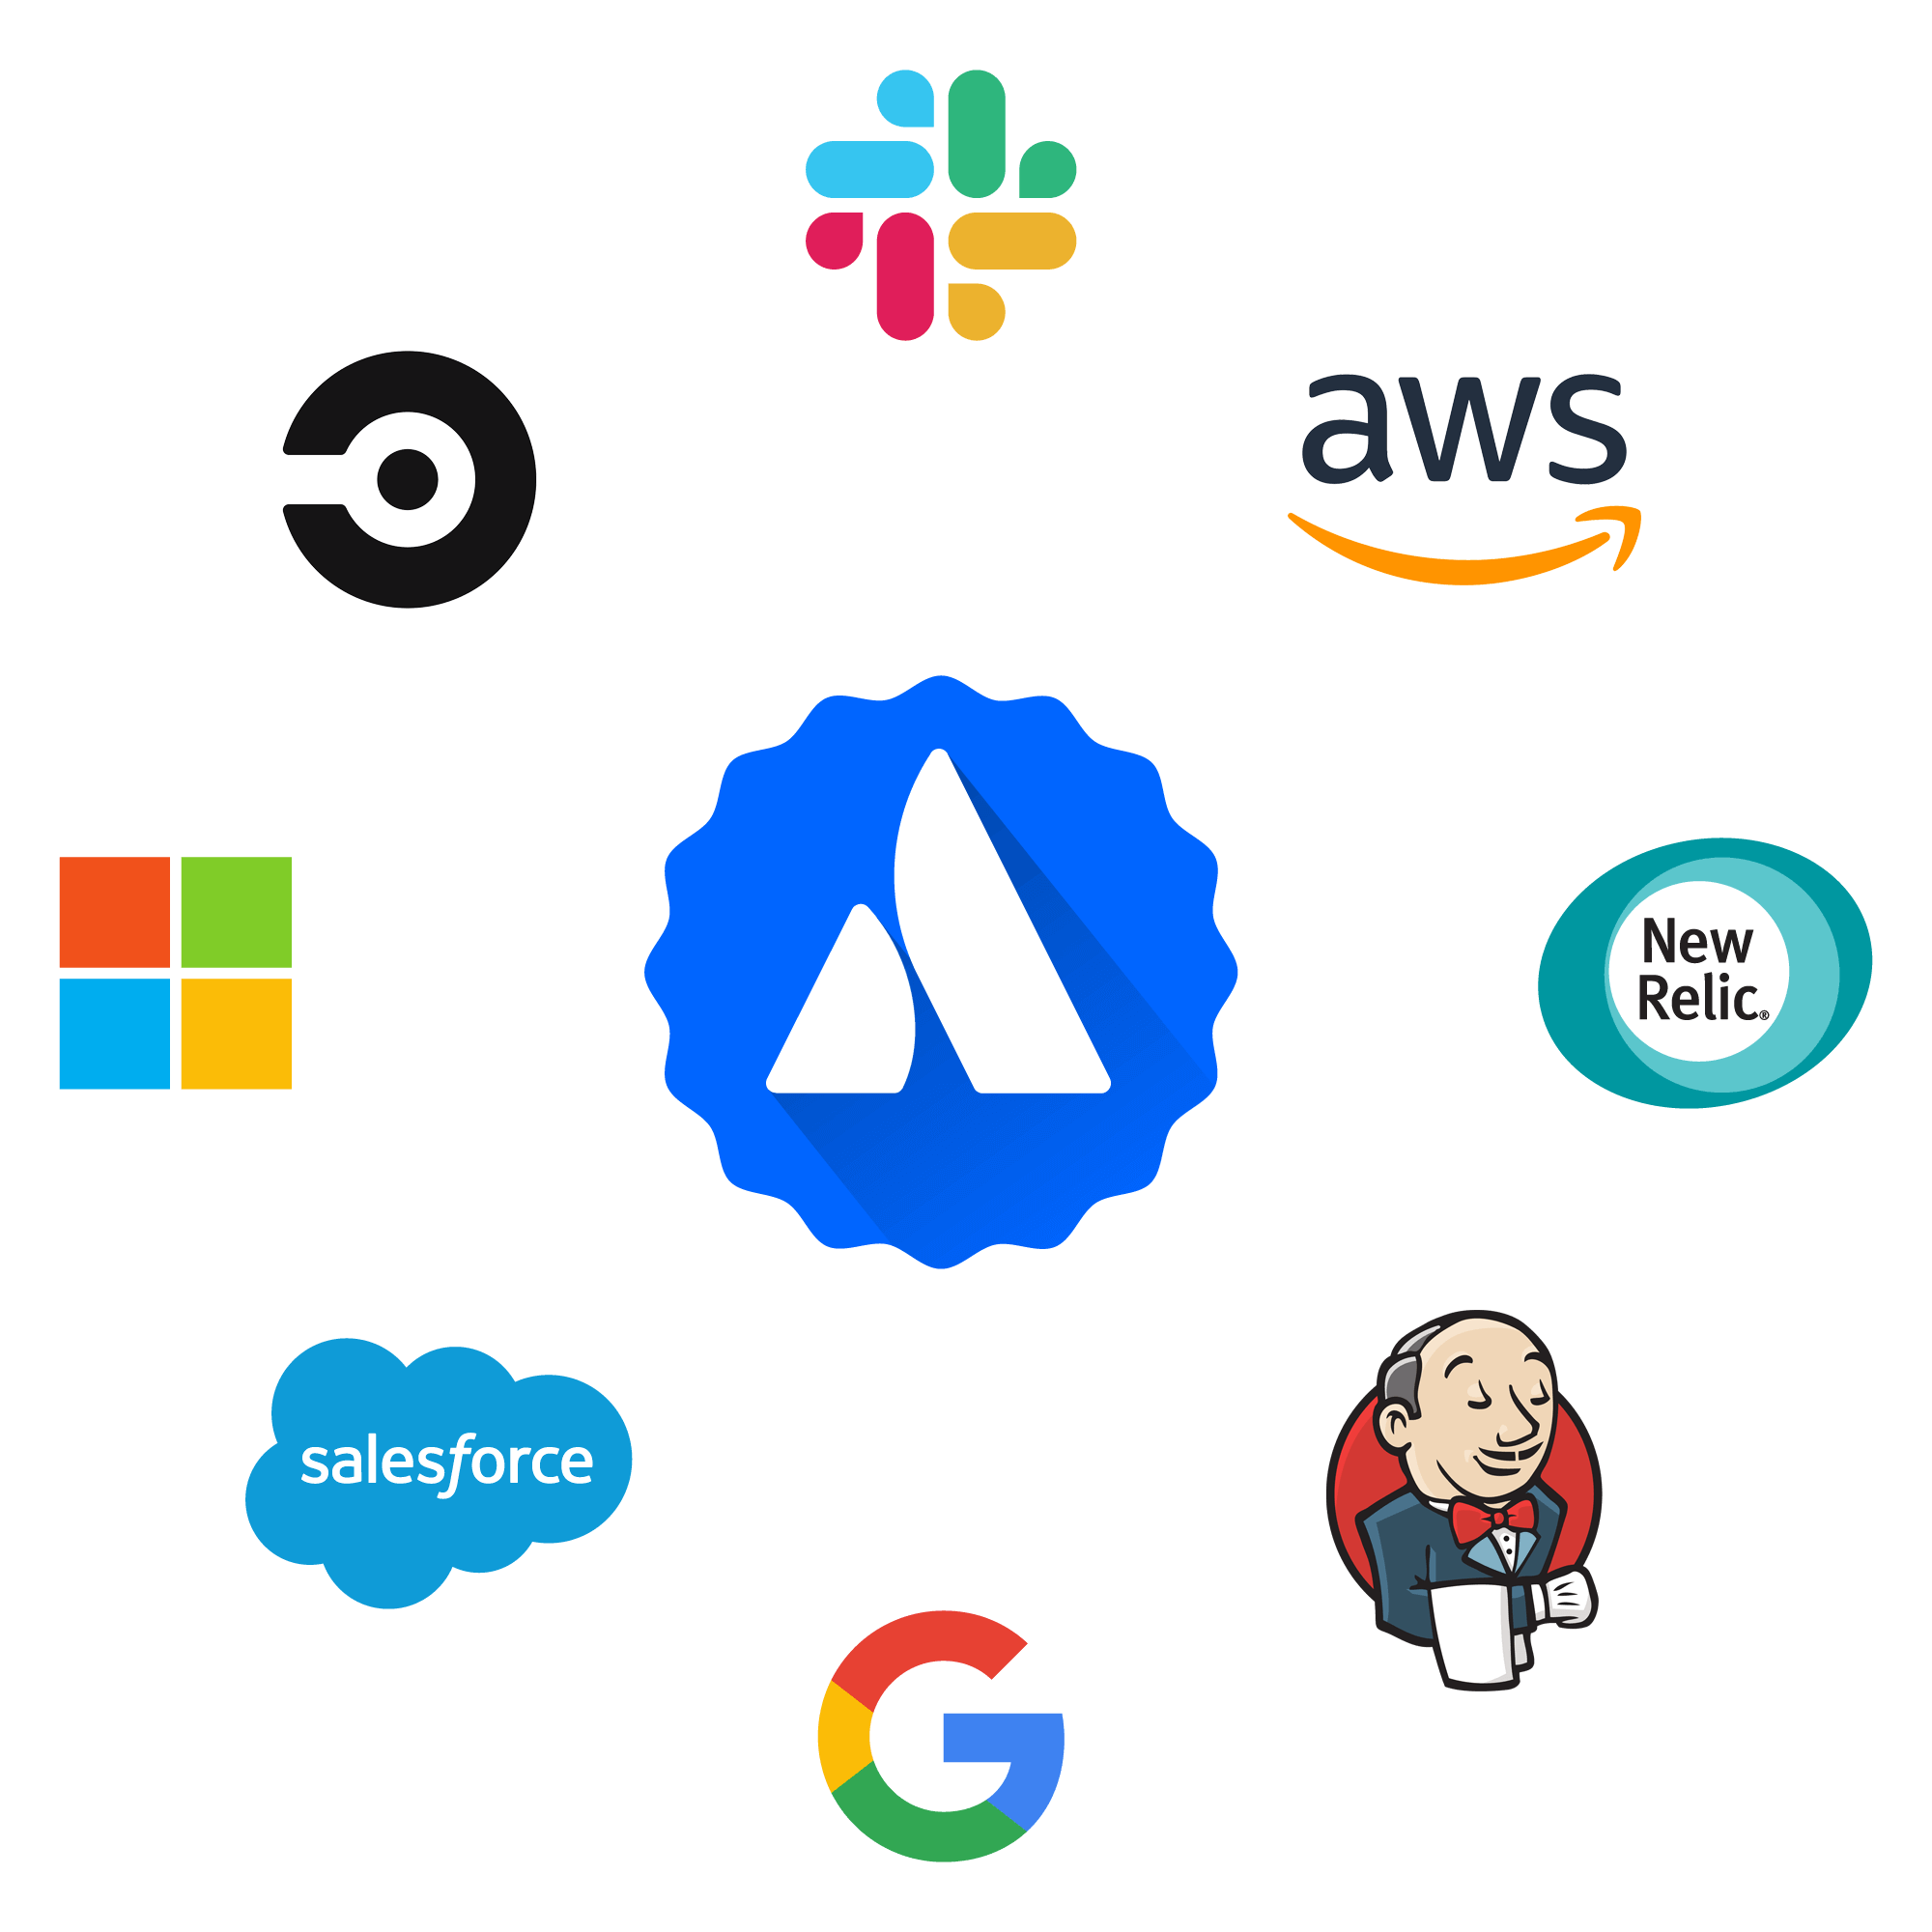 Jira Service Management marketplace and integrations